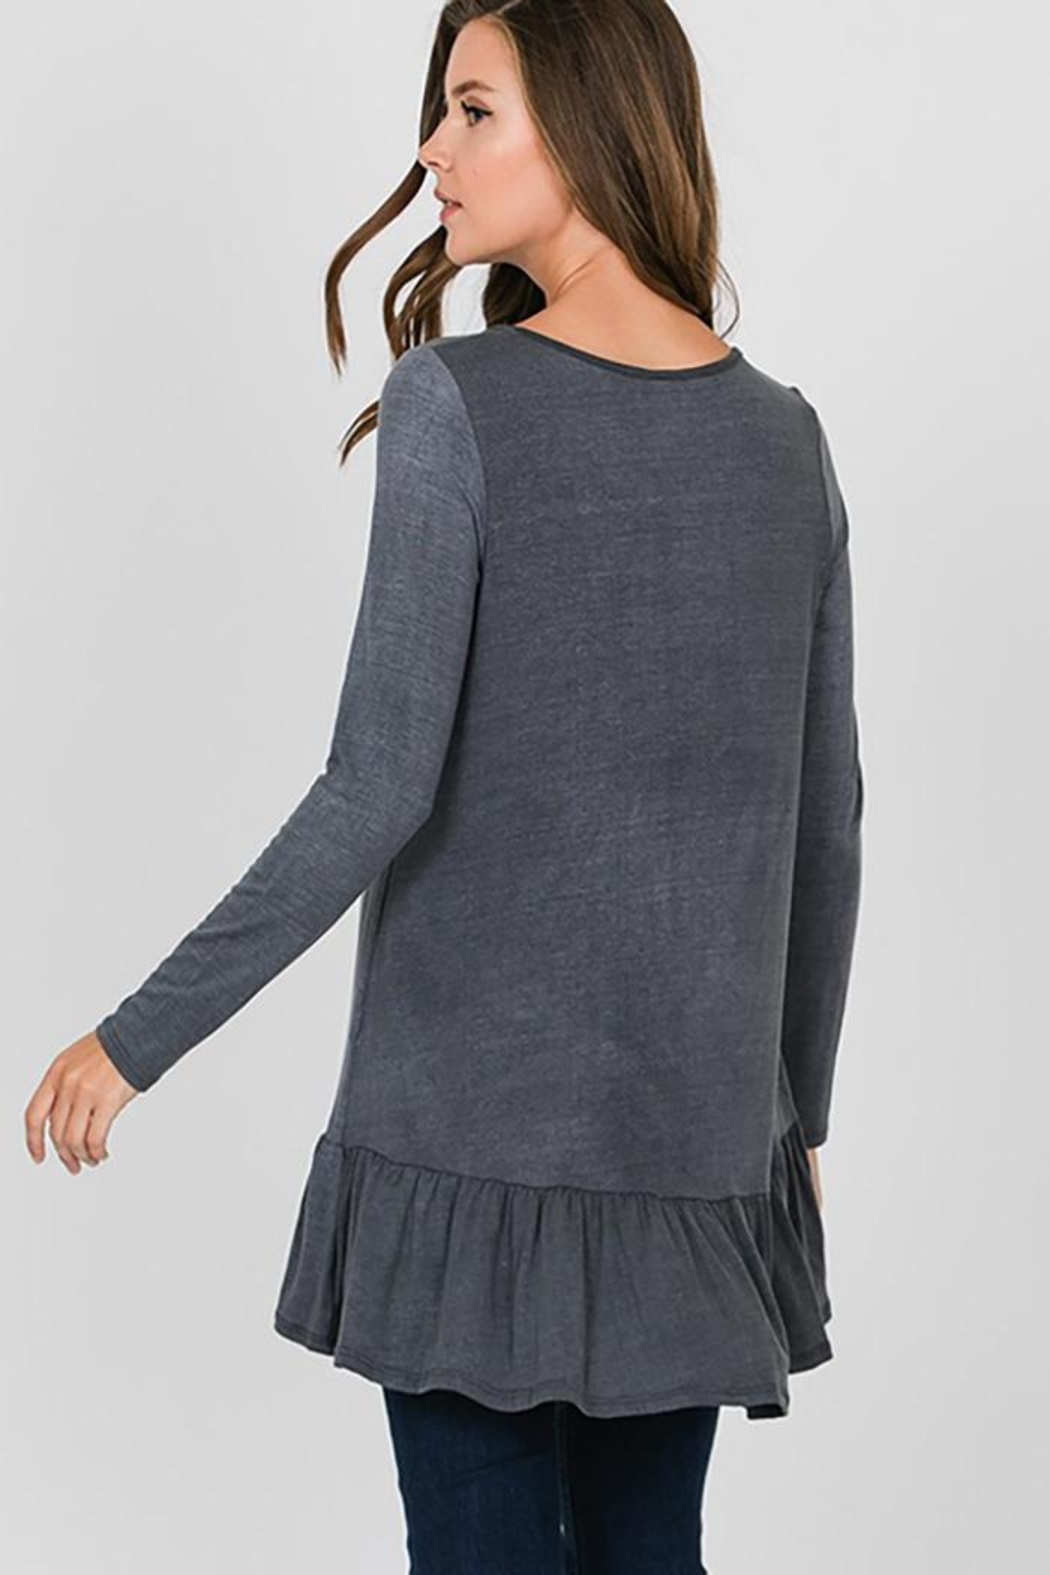 CY Fashion Grommet Lace Up Long Sleeve Top - Side Cropped Image